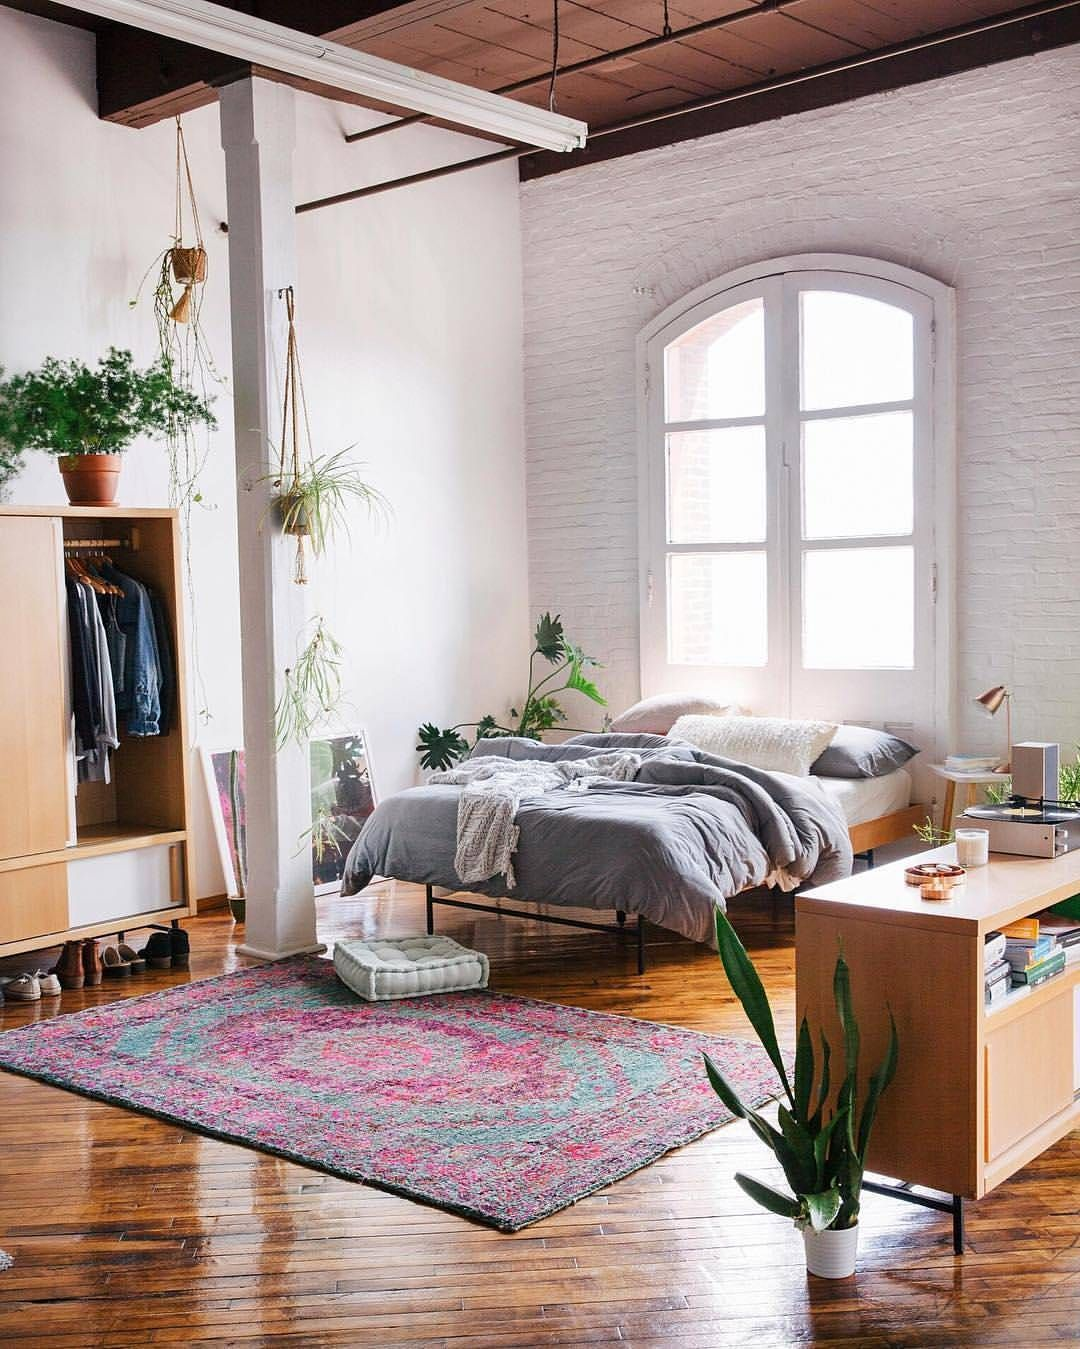 Loft bedroom windows   Likes  Comments  Interior  Home decor seriees on